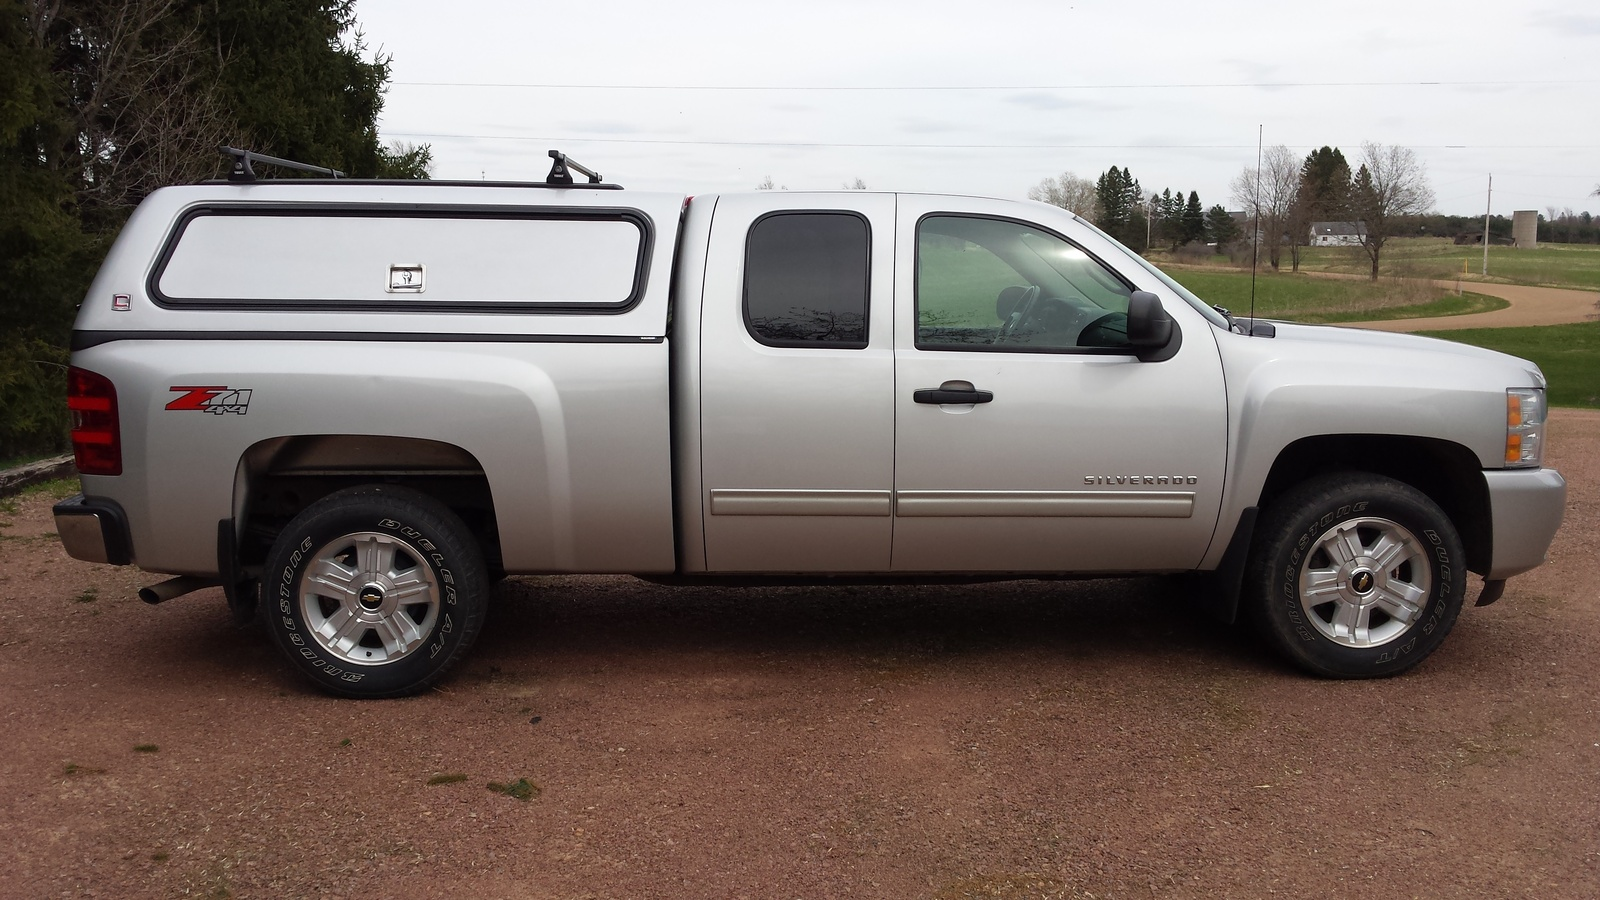 chevy silverado essay Chevrolet's model of a full-size pickup is called the silverado the latest model released by chevy was the 2013 silverado 1500 starting at $23,590 the silverado is a reliable and affordable truck.